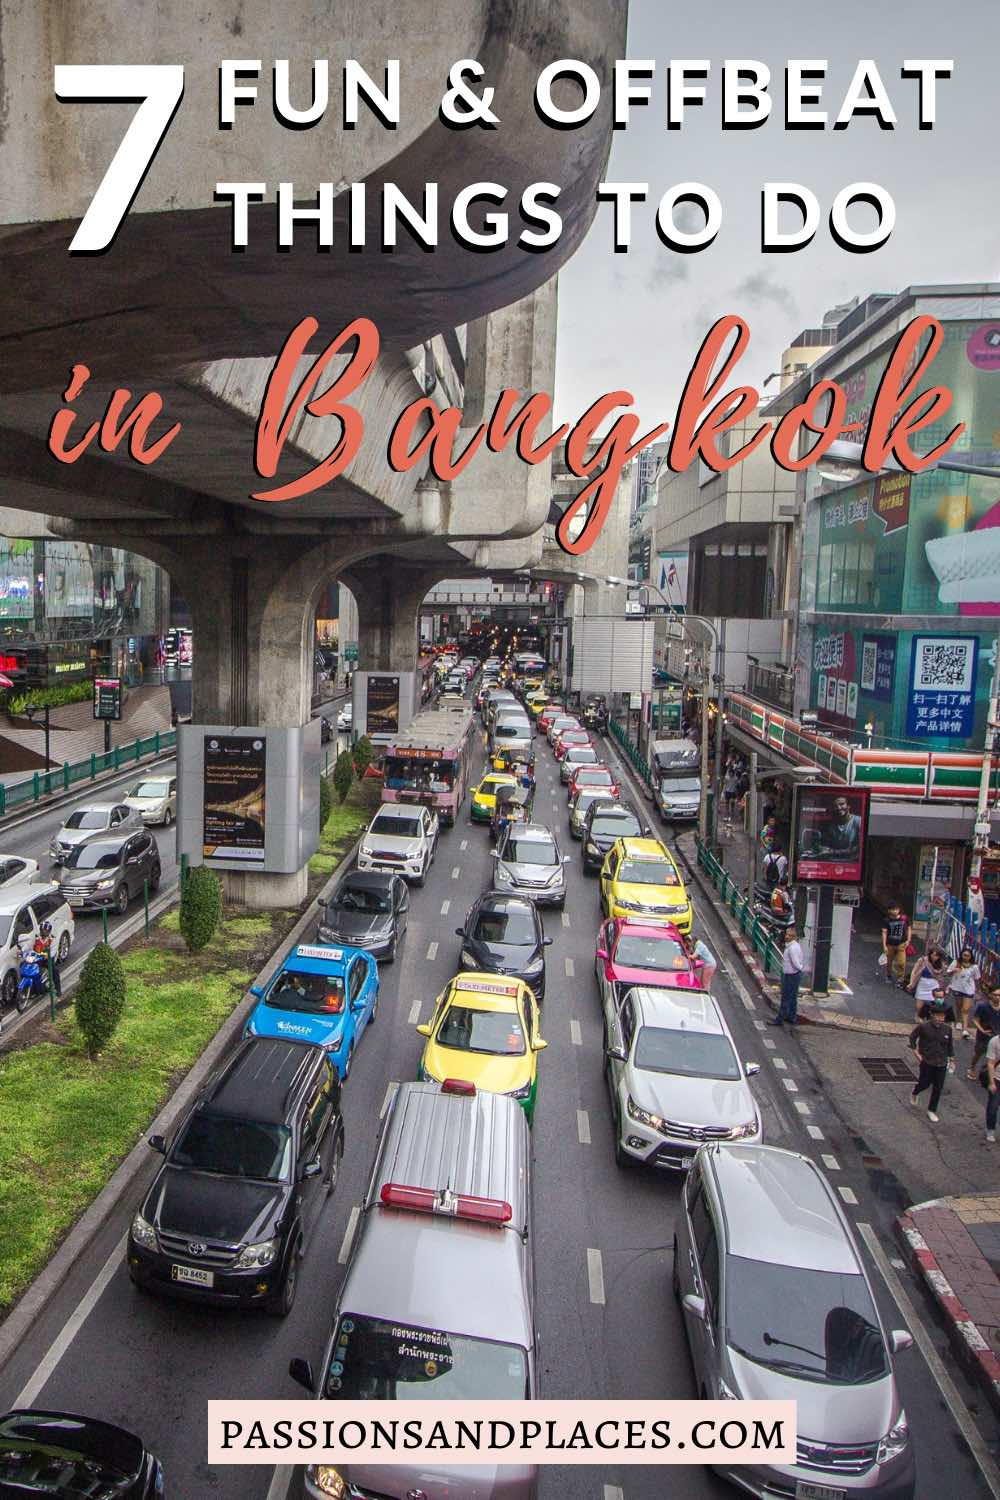 The top Bangkok attractions have been listed a million times - but what if you want to experience Bangkok off the beaten path? If you've already seen the city's must-do sights, head to one of the spots on this list during your next trip. From quirky museums to one-of-a-kind stores, these are some of the best non-touristy things to do in Bangkok. #Bangkok #Thailand #BKK